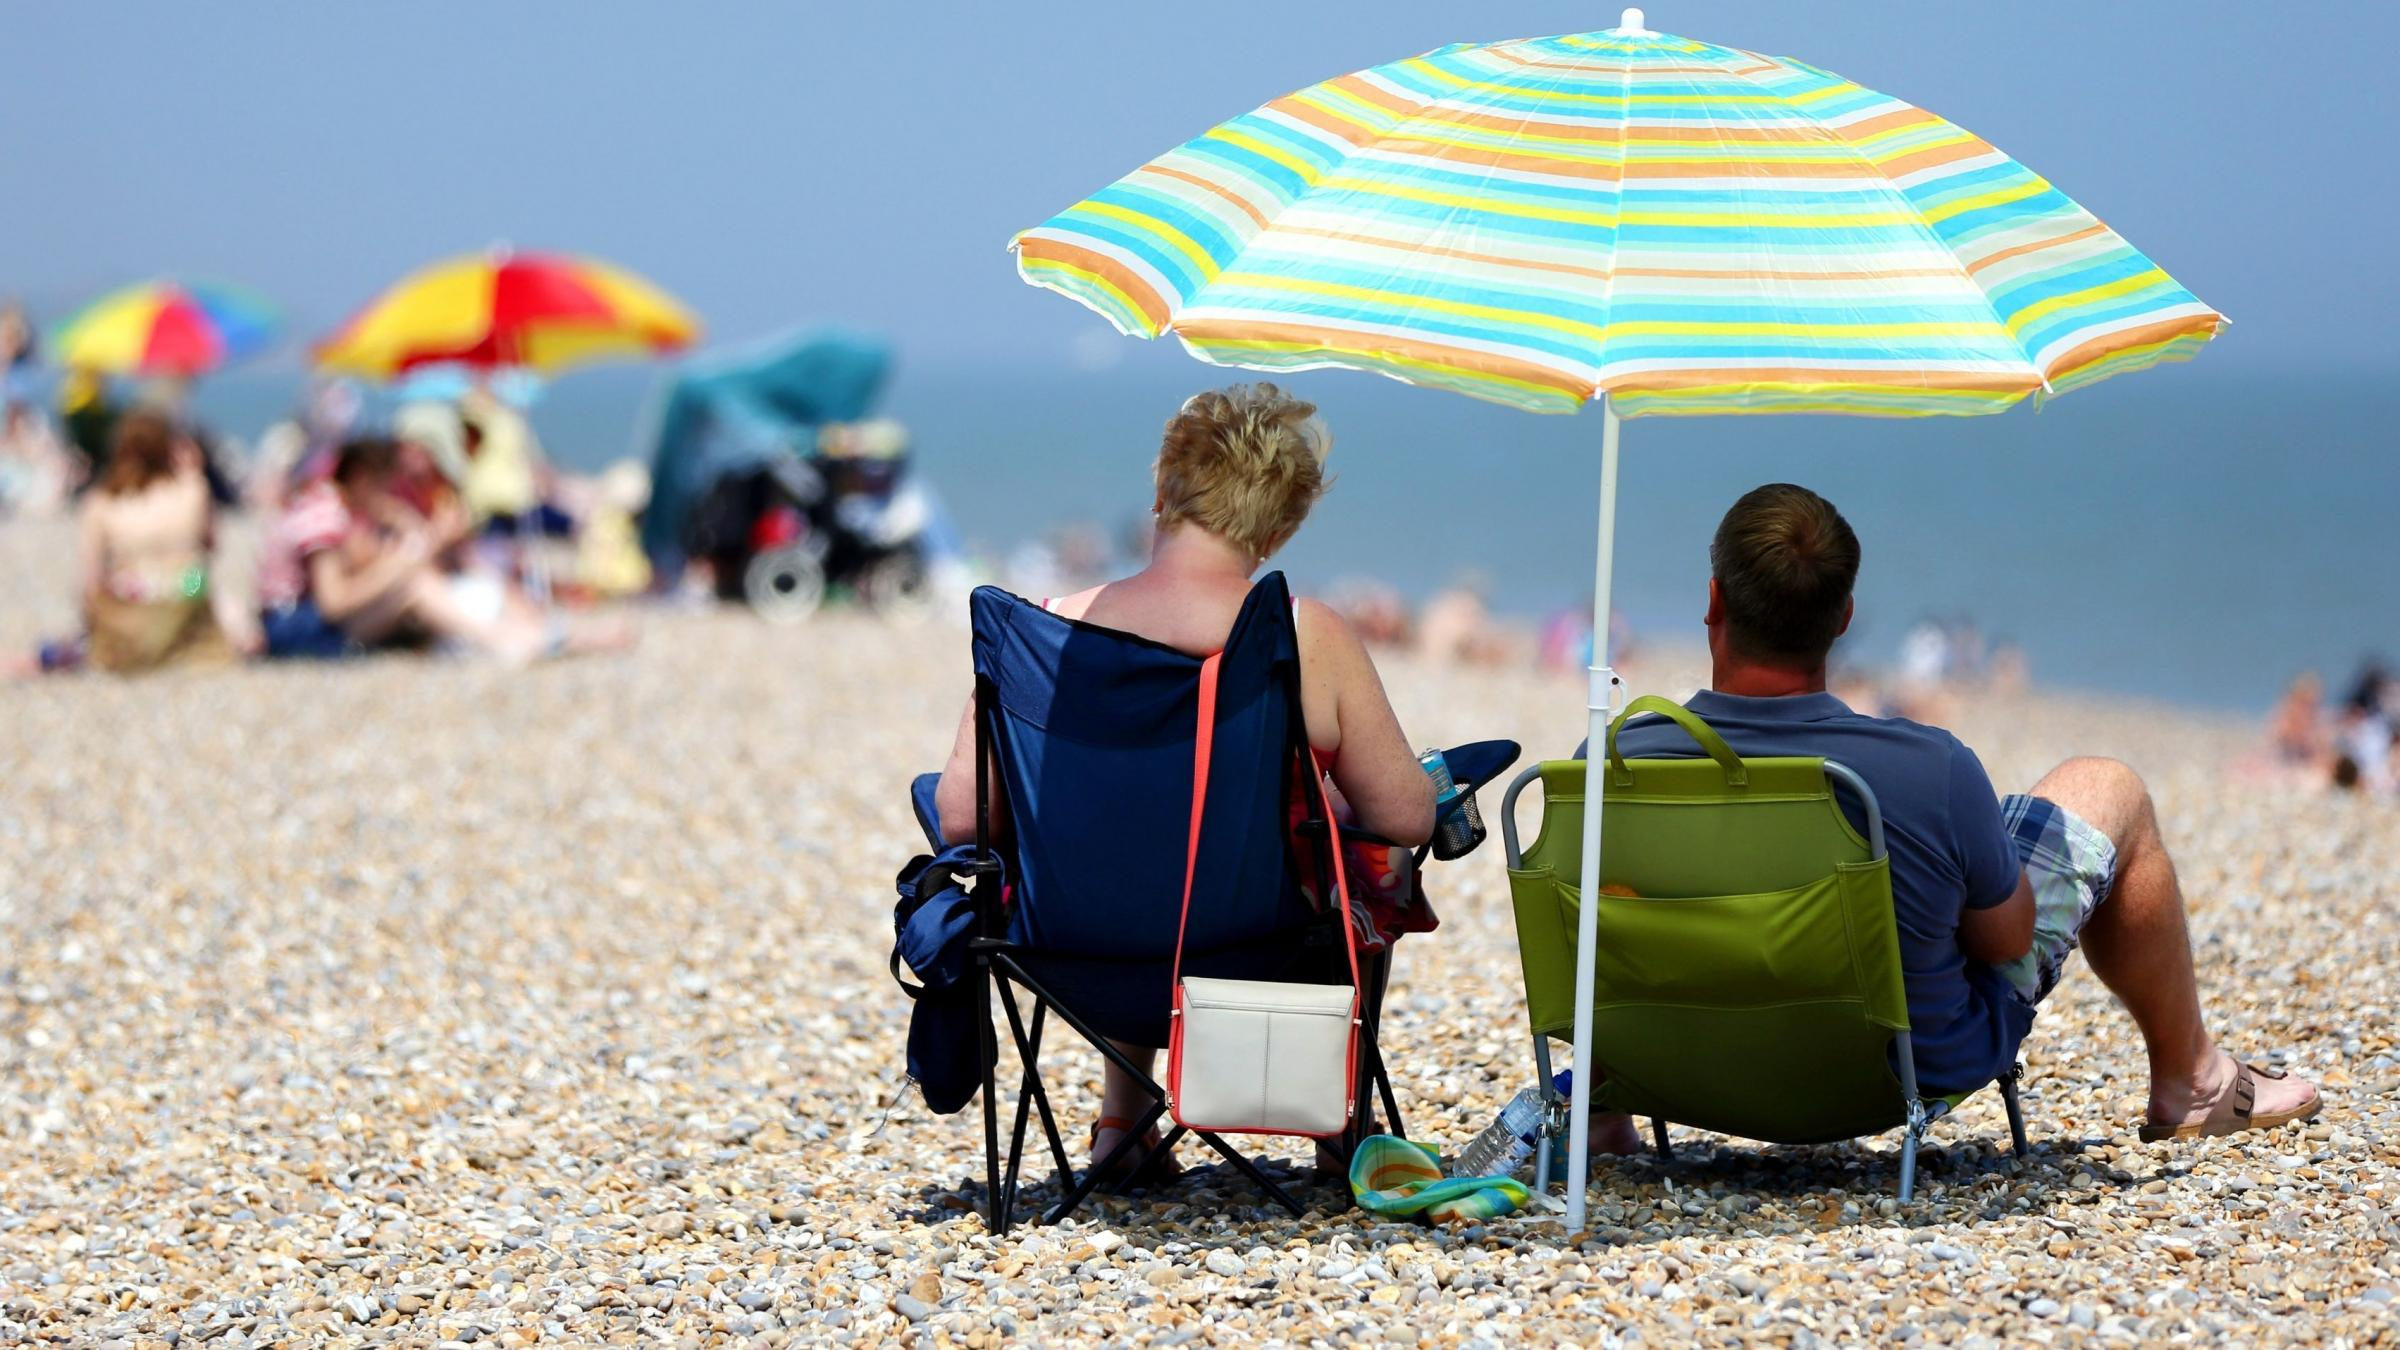 Britain basks in record-breaking June temperatures - and it's getting hotter